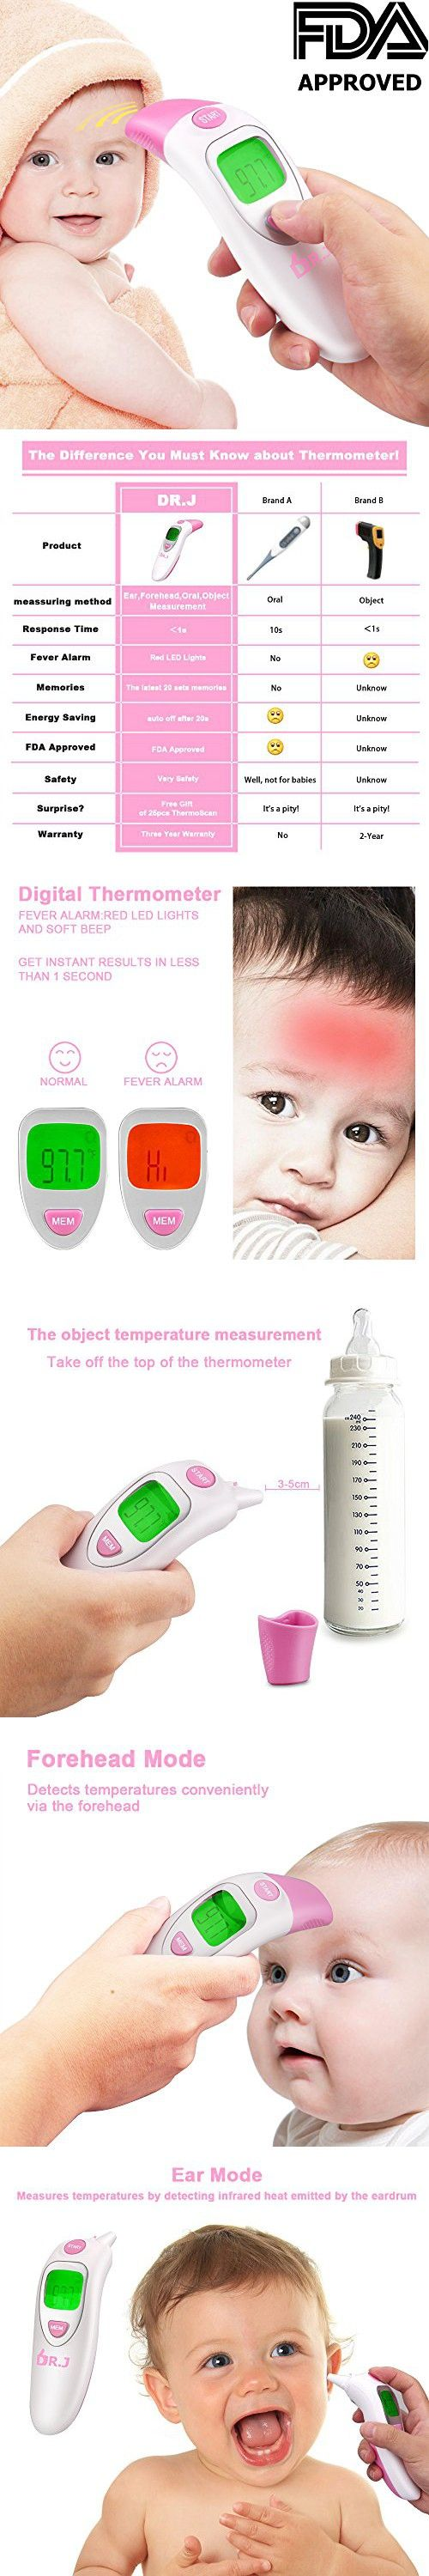 DR.J Dual Mode Ear and Forehead Thermometer, Digital Home Medical Thermometer for Kids, Adults with Fever Alarm Function, High Accuracy, FDA Approved